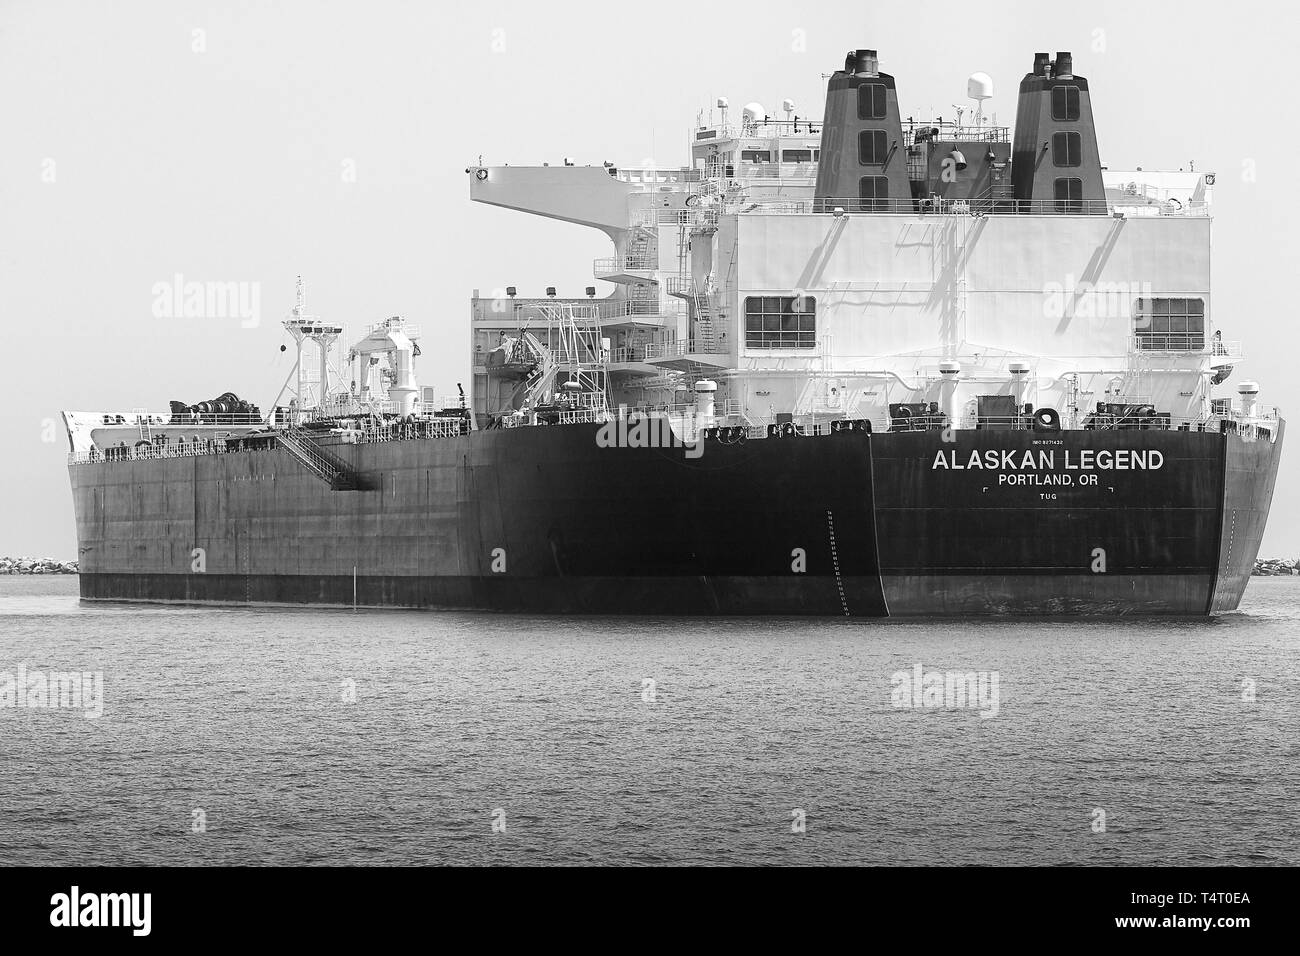 Black And White Photo Of The Giant Supertanker (Crude Oil Tanker), ALASKAN LEGEND, Anchored In The Port Of Long Beach, California, USA. - Stock Image